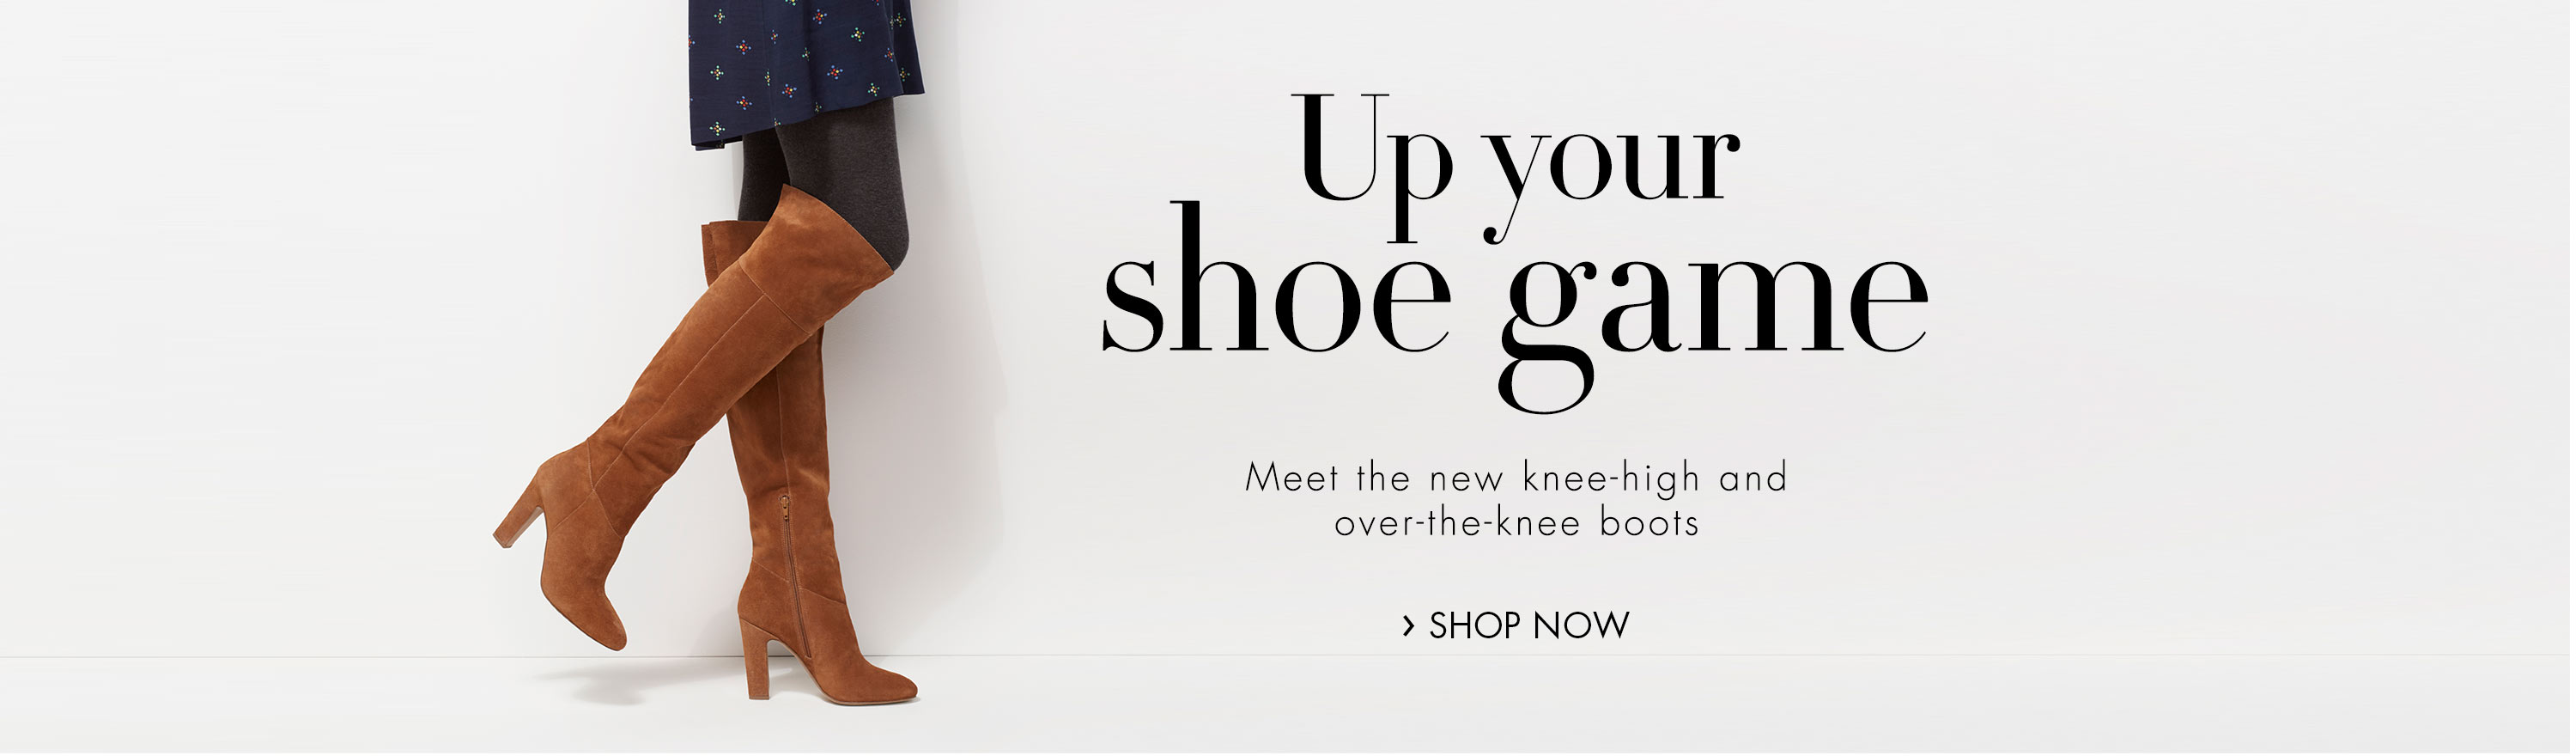 Up your shoe game